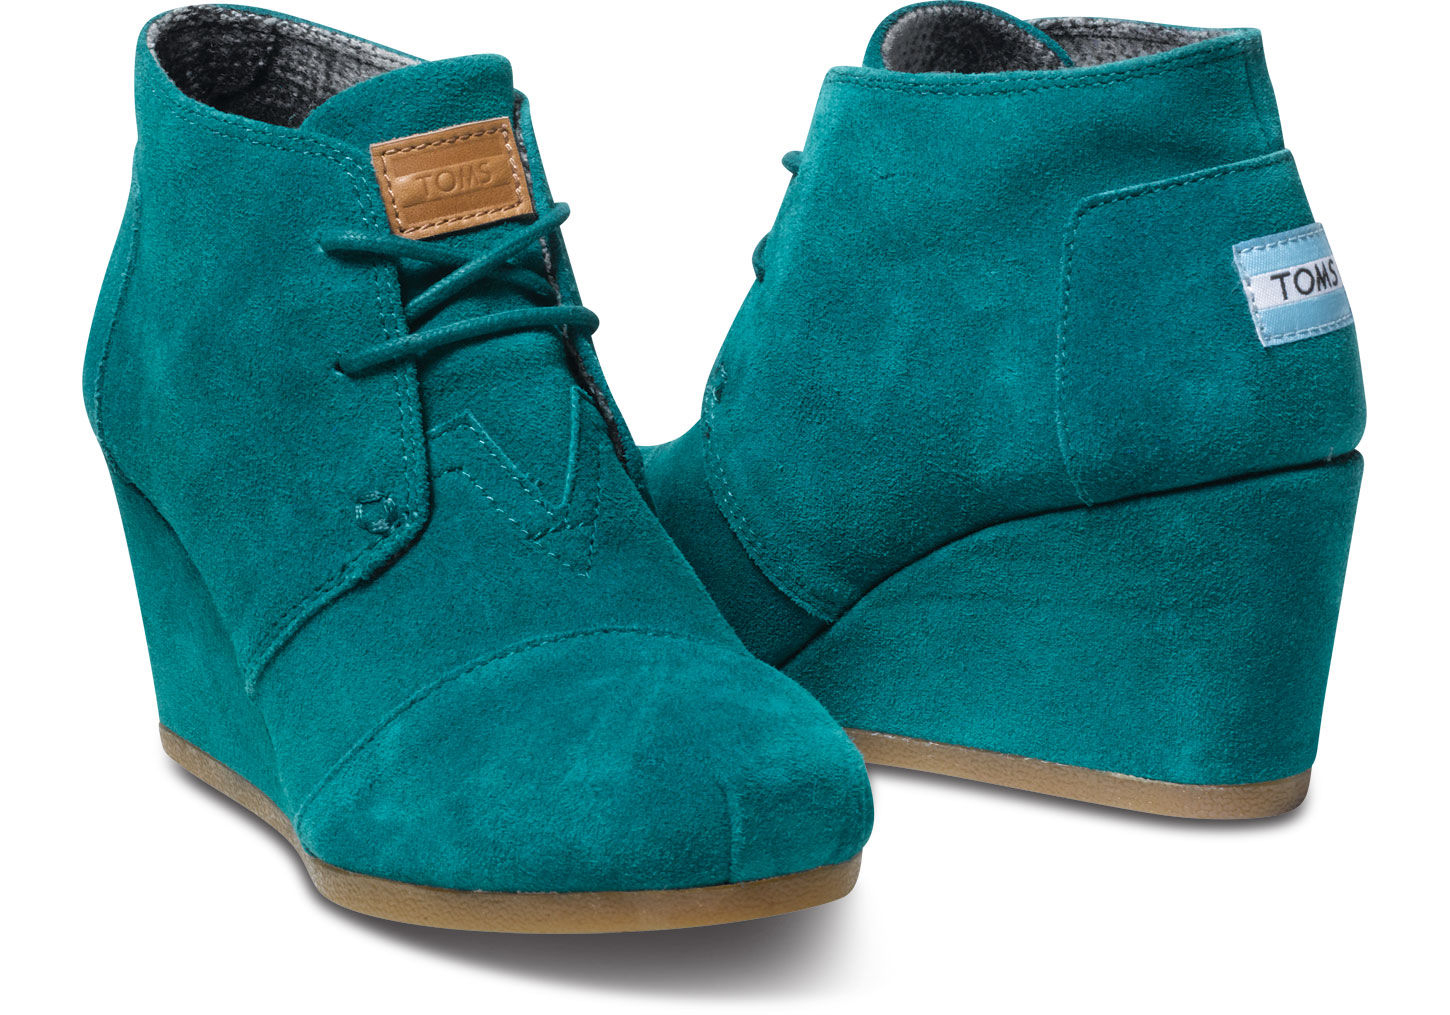 Lyst - Toms Suede Womens Desert Wedges in Green